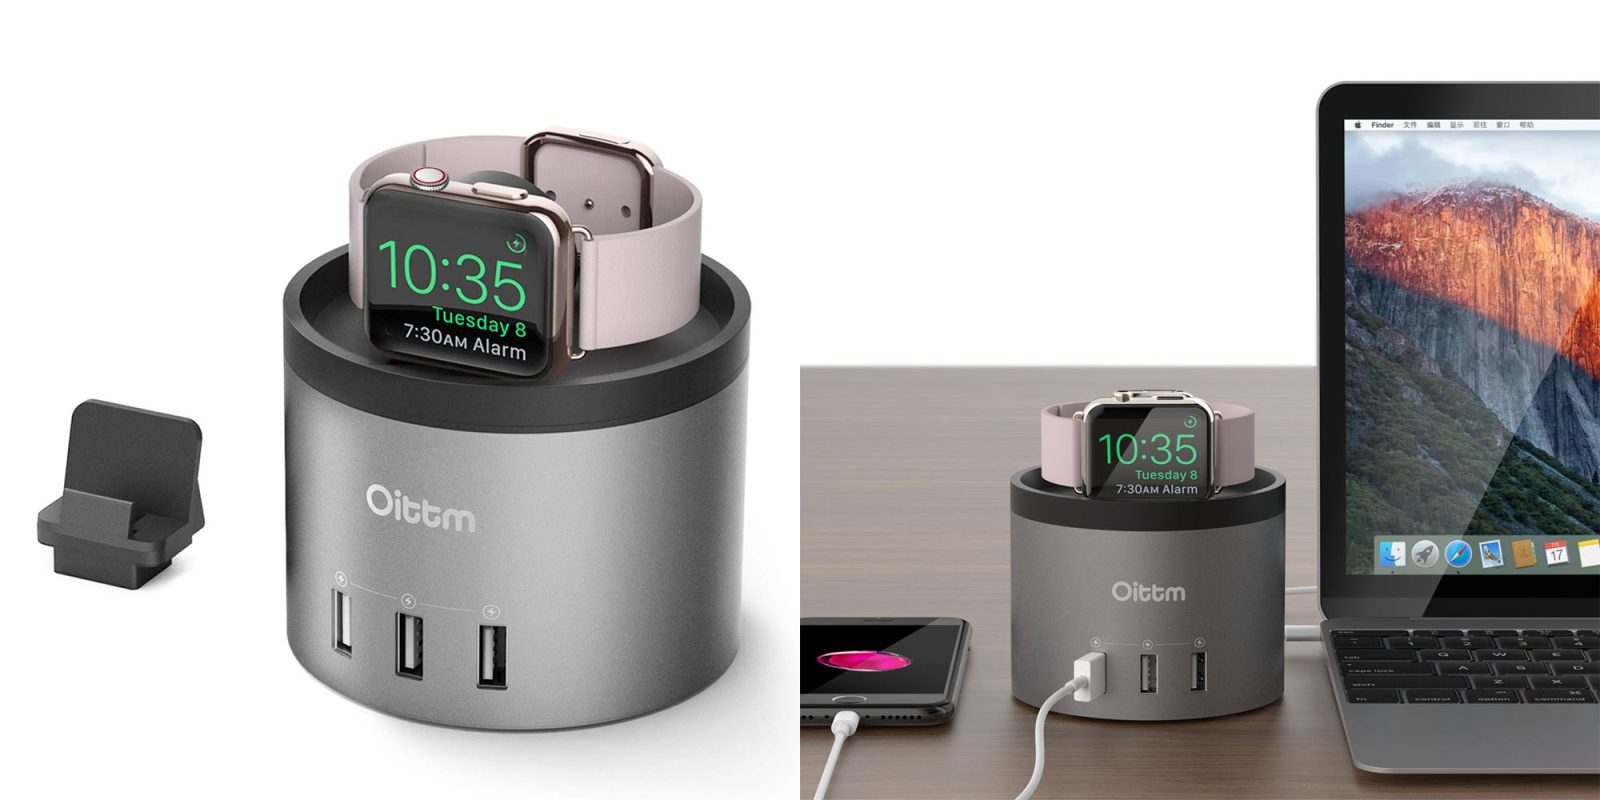 Save 65% on a 4-in-1 charging dock that powers your Apple Watch + more for $10